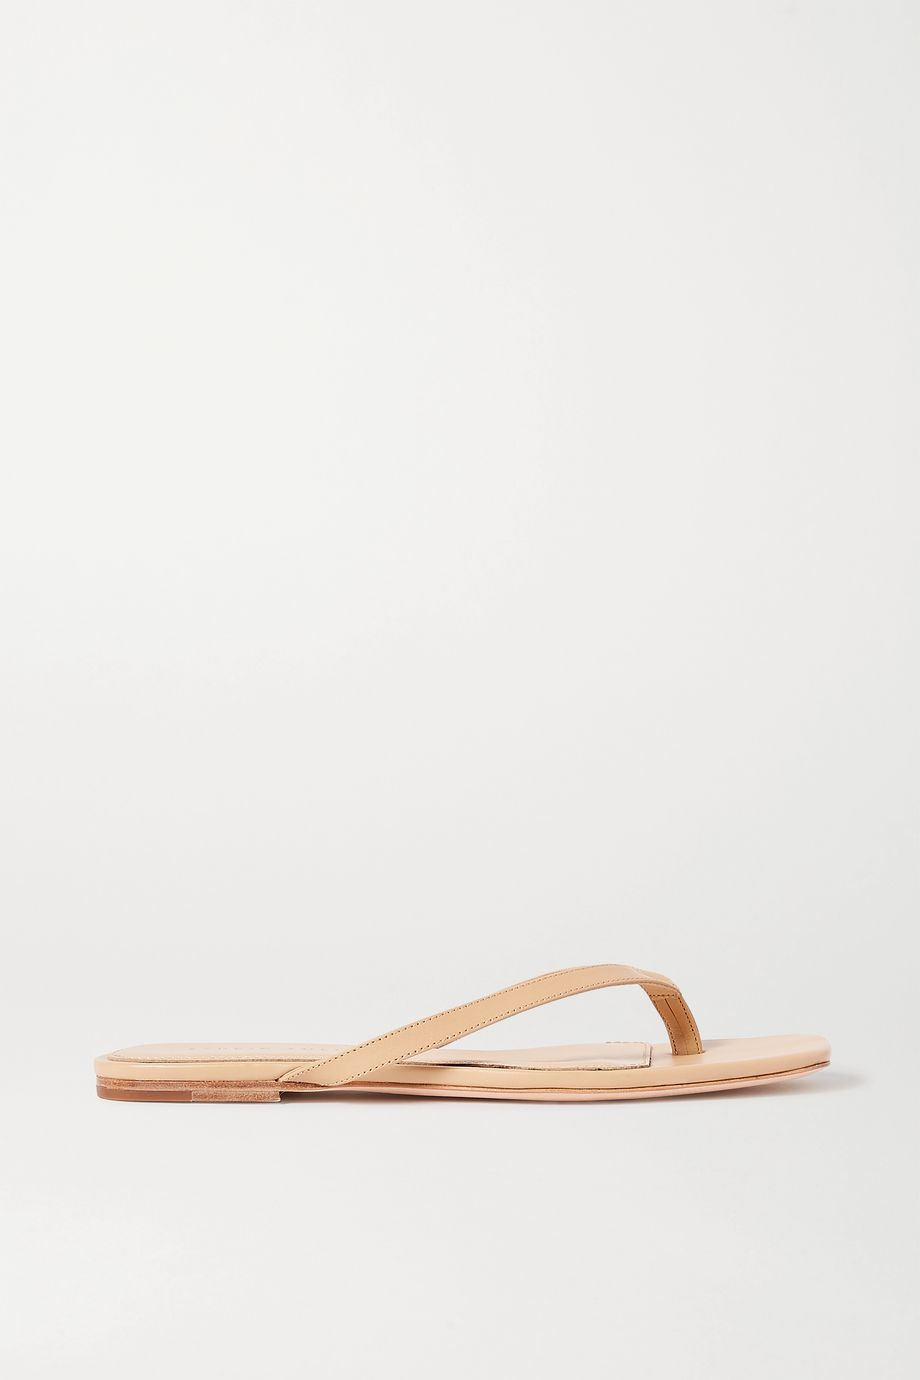 STUDIO AMELIA 2.2 leather flip flops